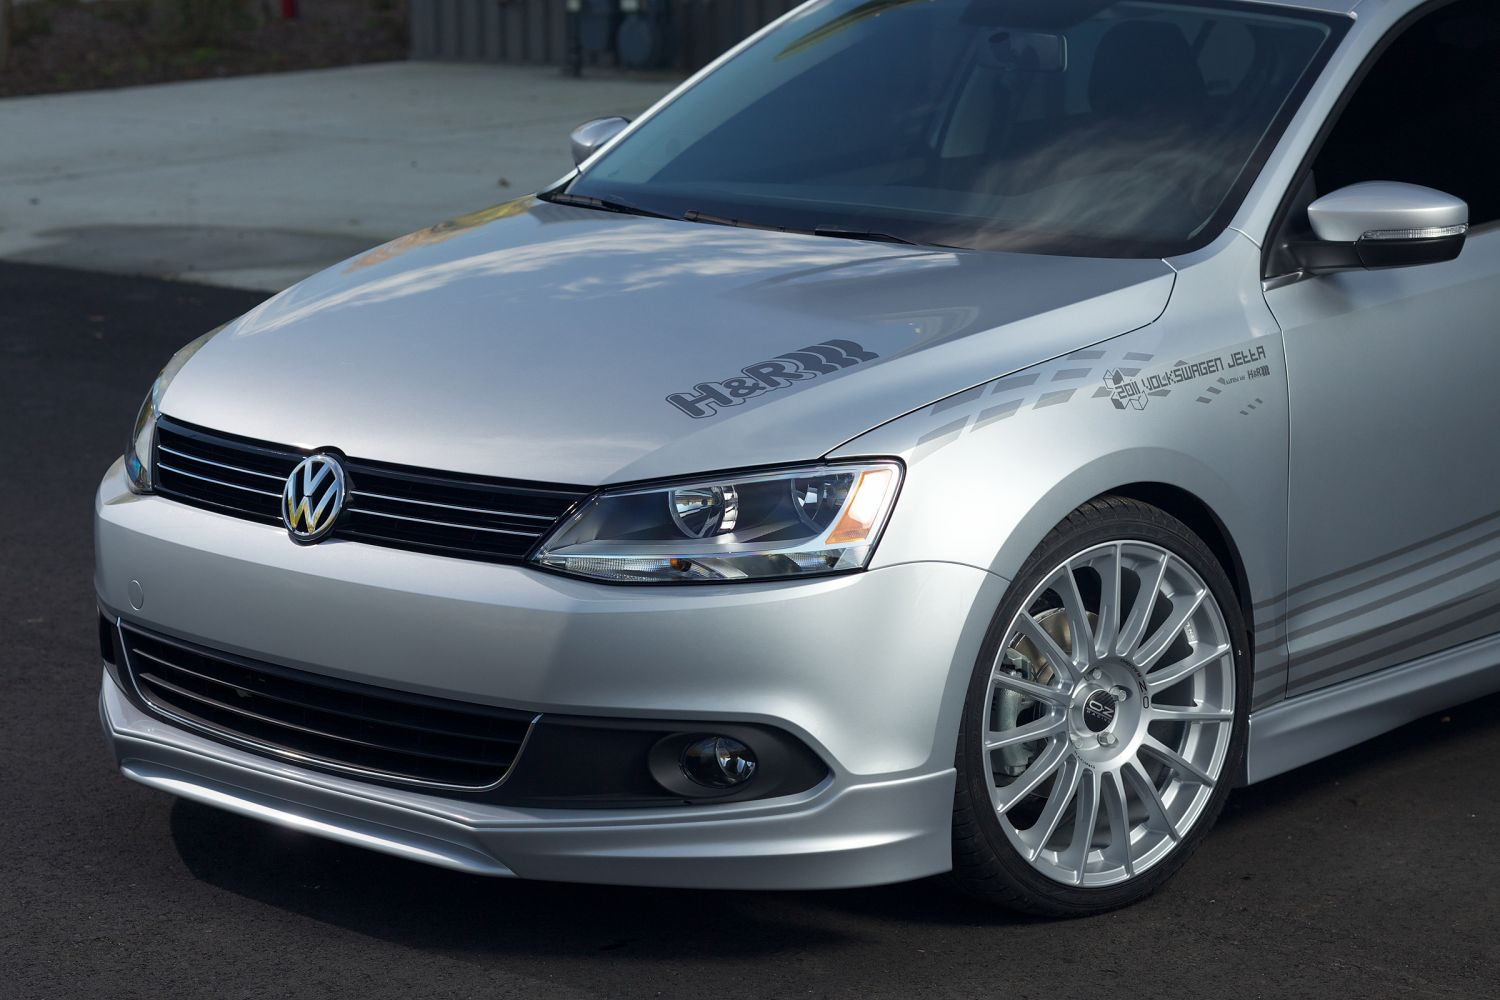 H Amp R Volkswagen Jetta H Amp R Special Springs Lp